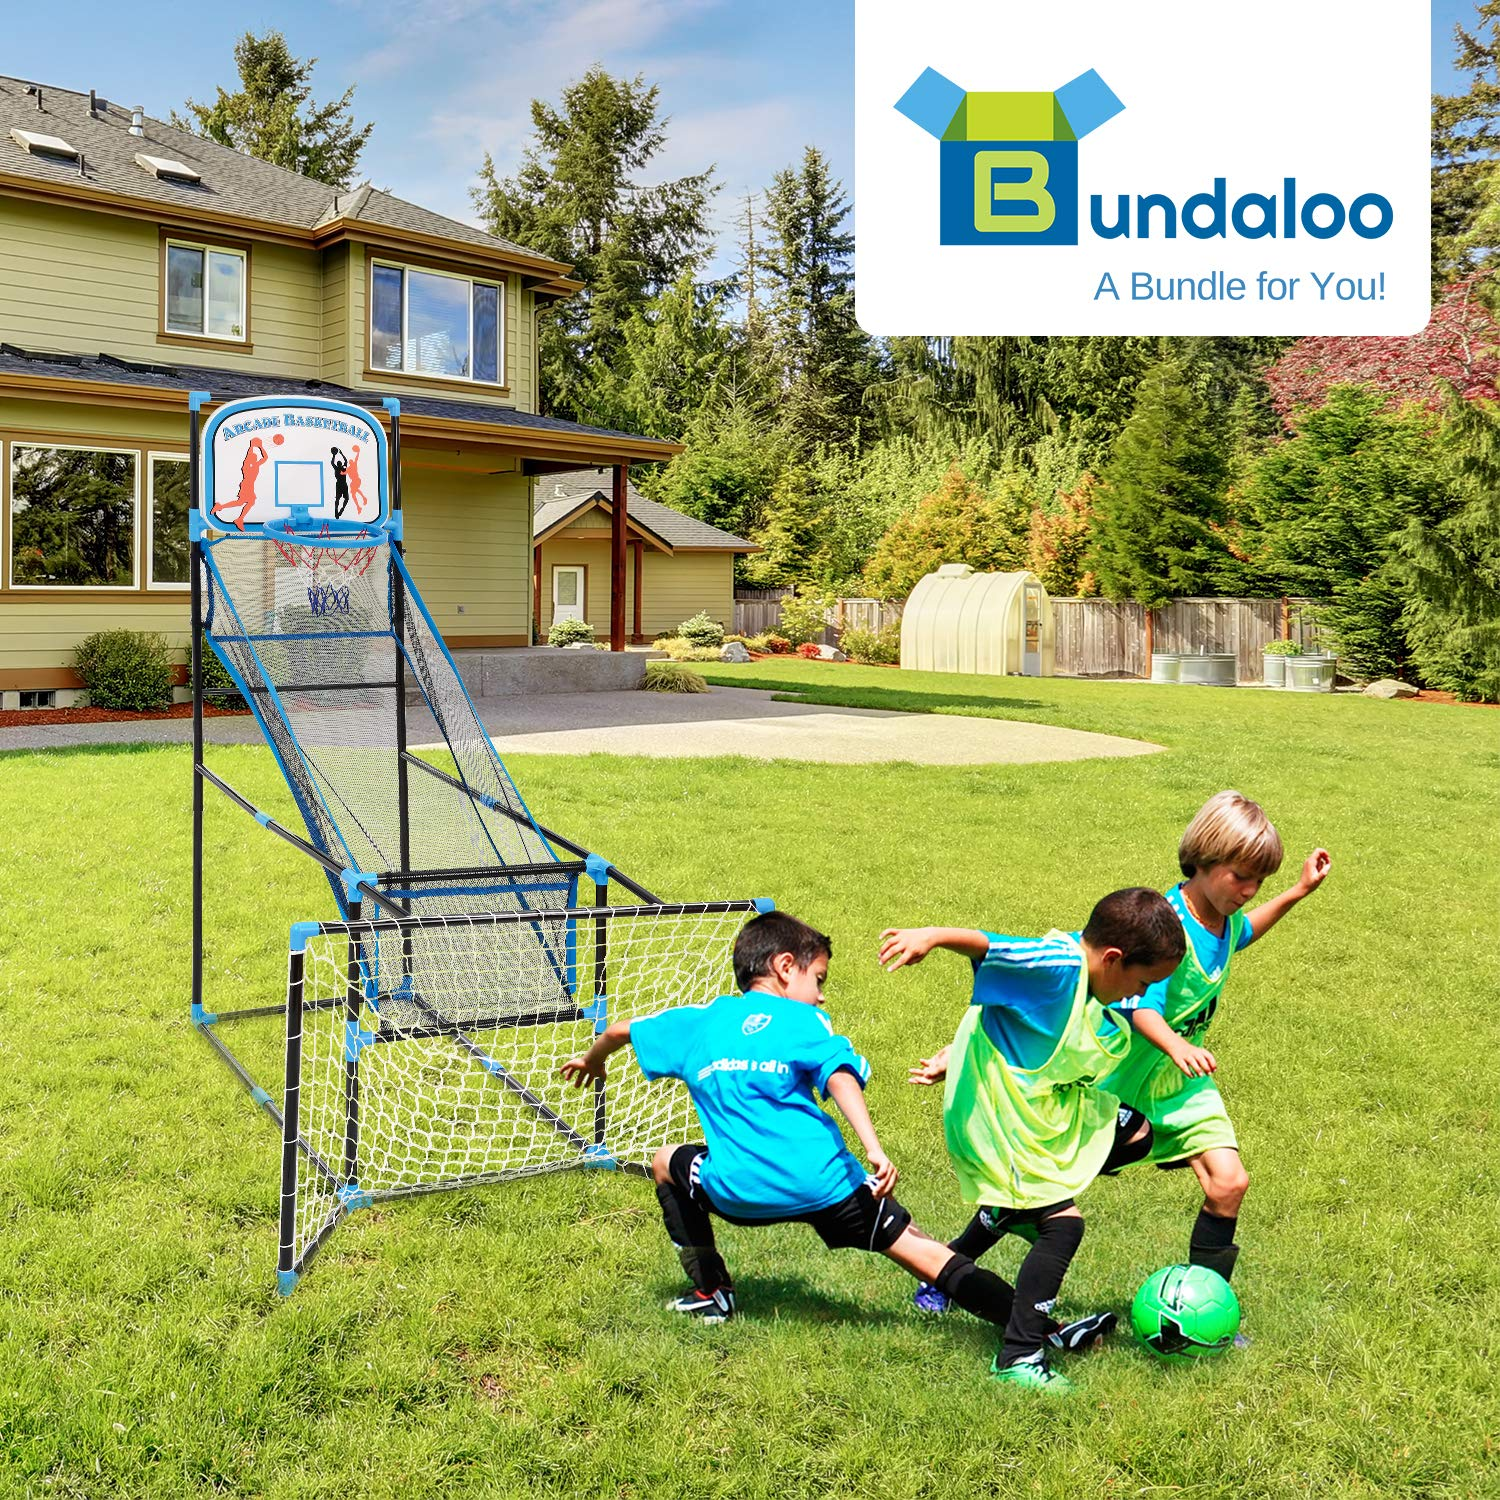 Bundaloo 3 in 1 Arcade Game | Basketball, Soccer, and Hockey Kids Toys | Fun Outdoor and Indoor Ball Games for Boys, Girls, Toddler | Includes 3 Balls, Backboard Hoop, Net Goal, Stick, and Air Pump by Bundaloo (Image #4)